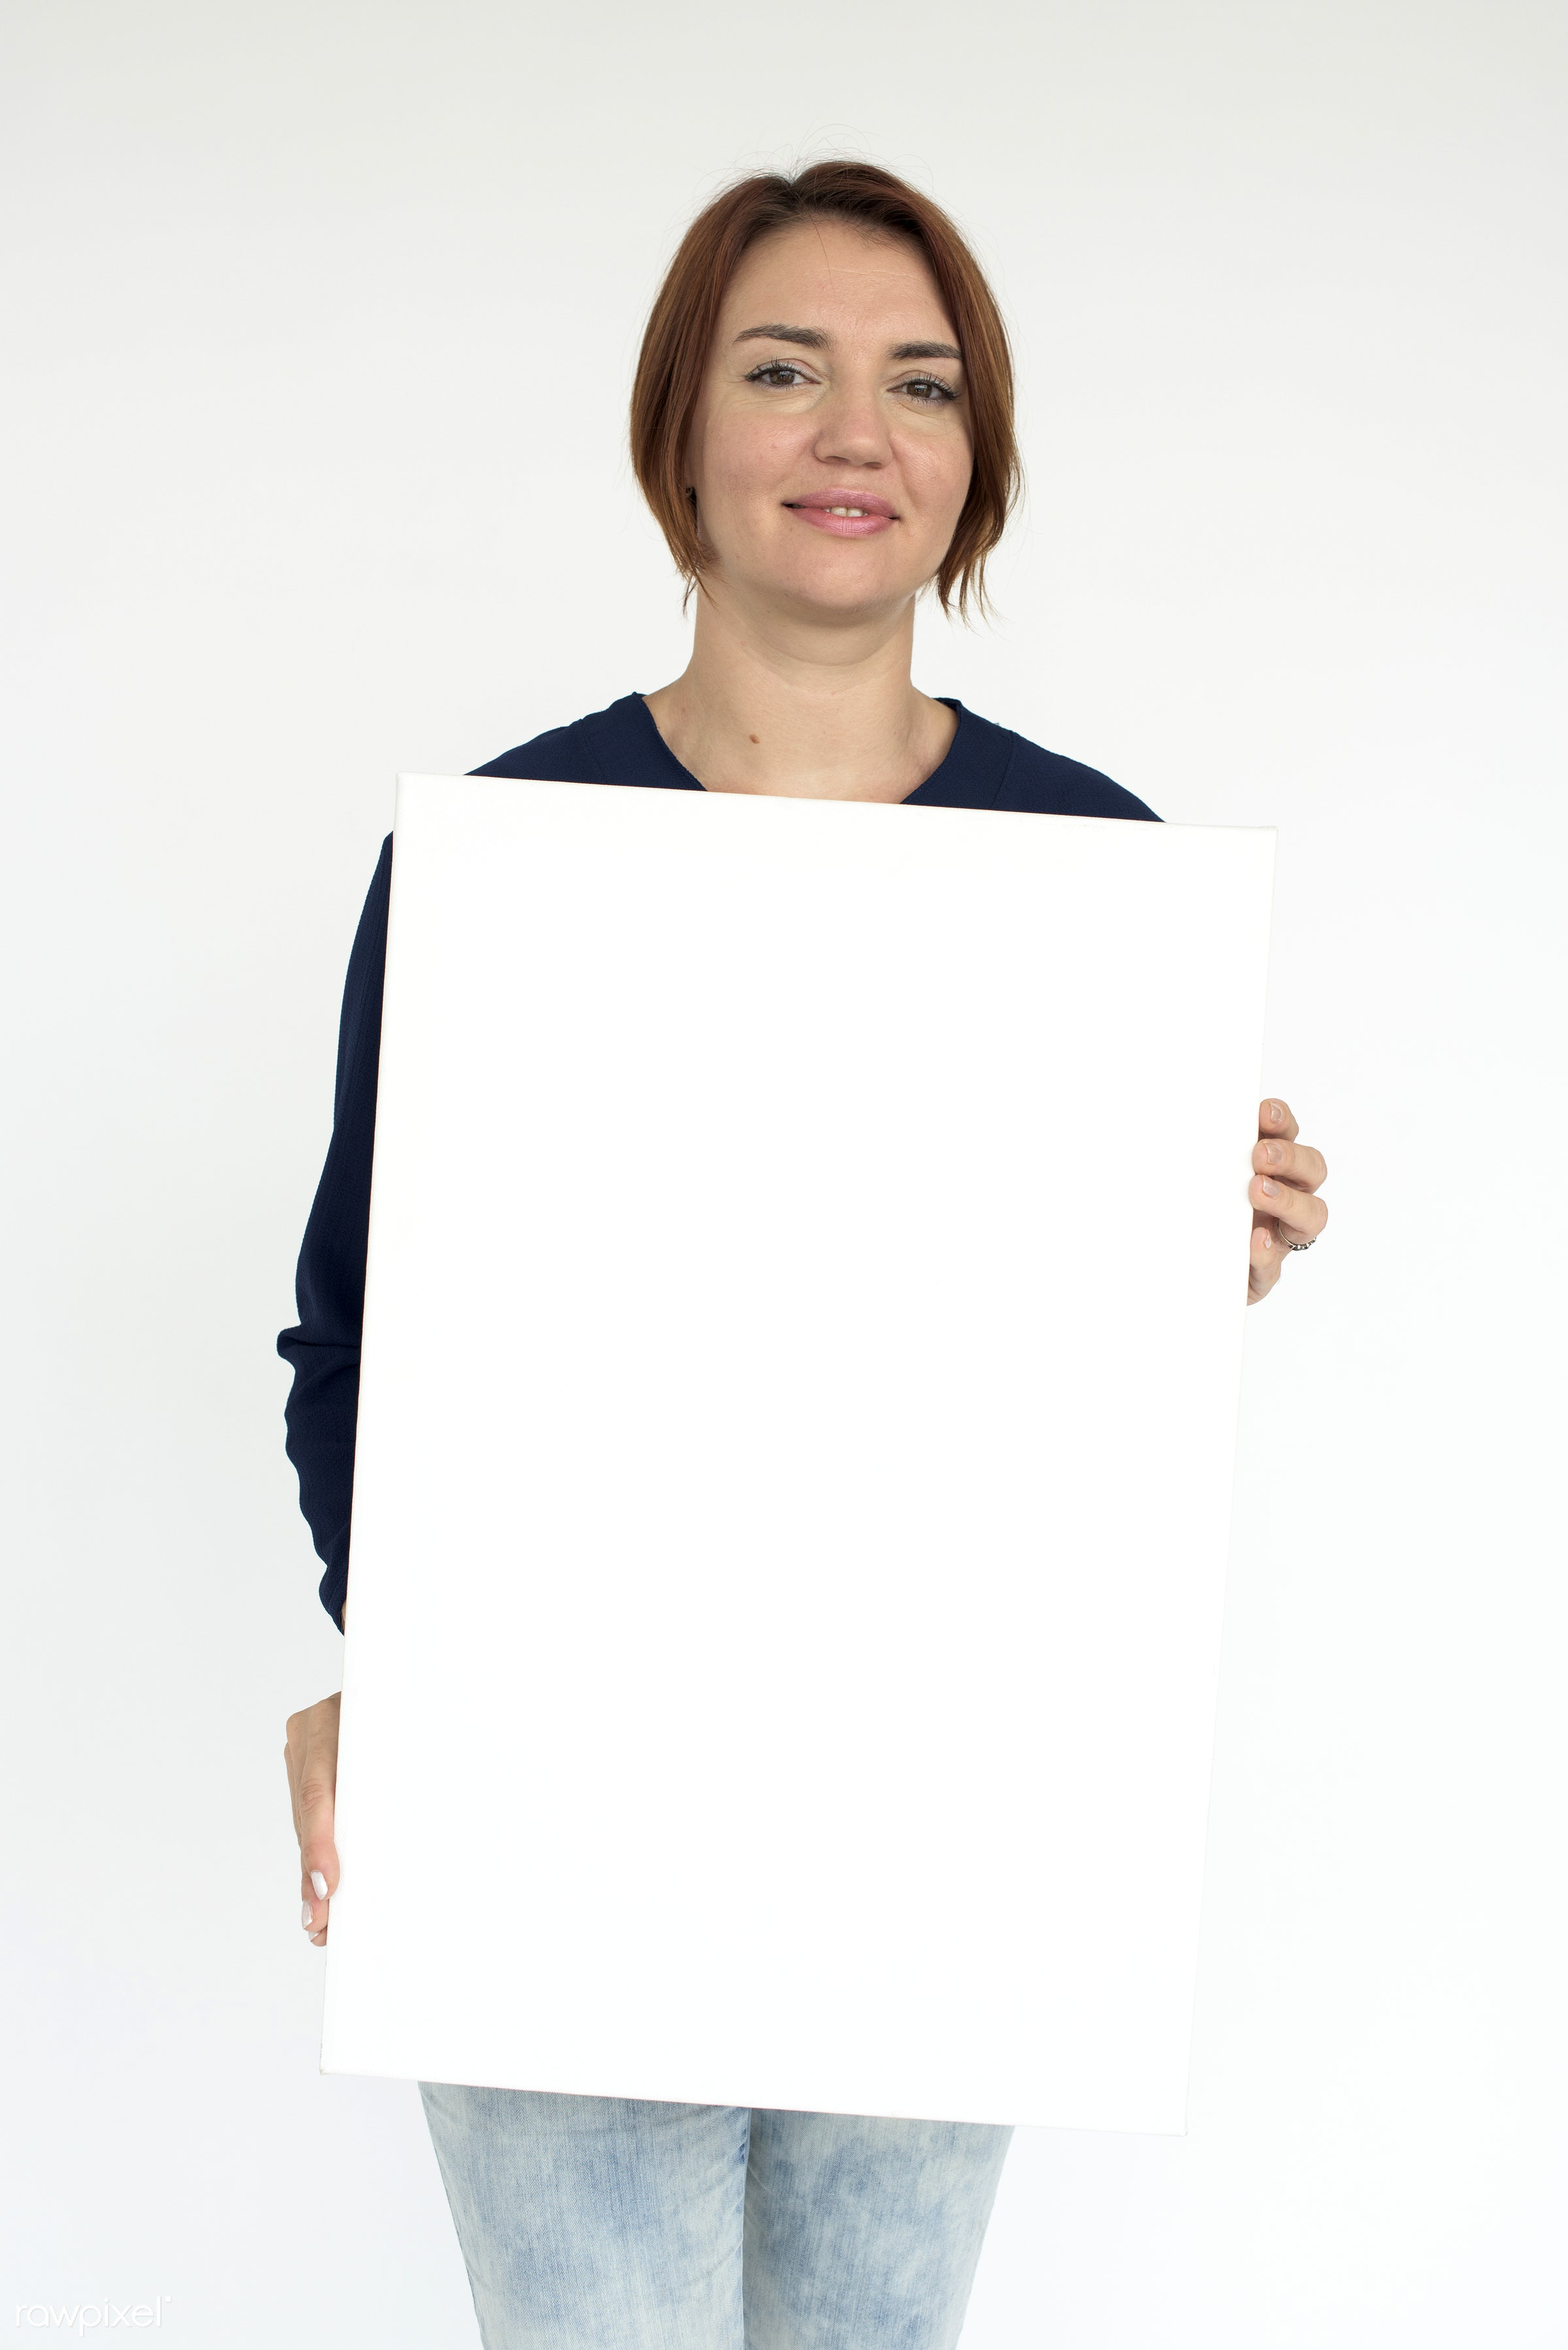 studio, expression, person, holding, copyspace, isolated on white, advertising, people, caucasian, placard, woman, casual,...